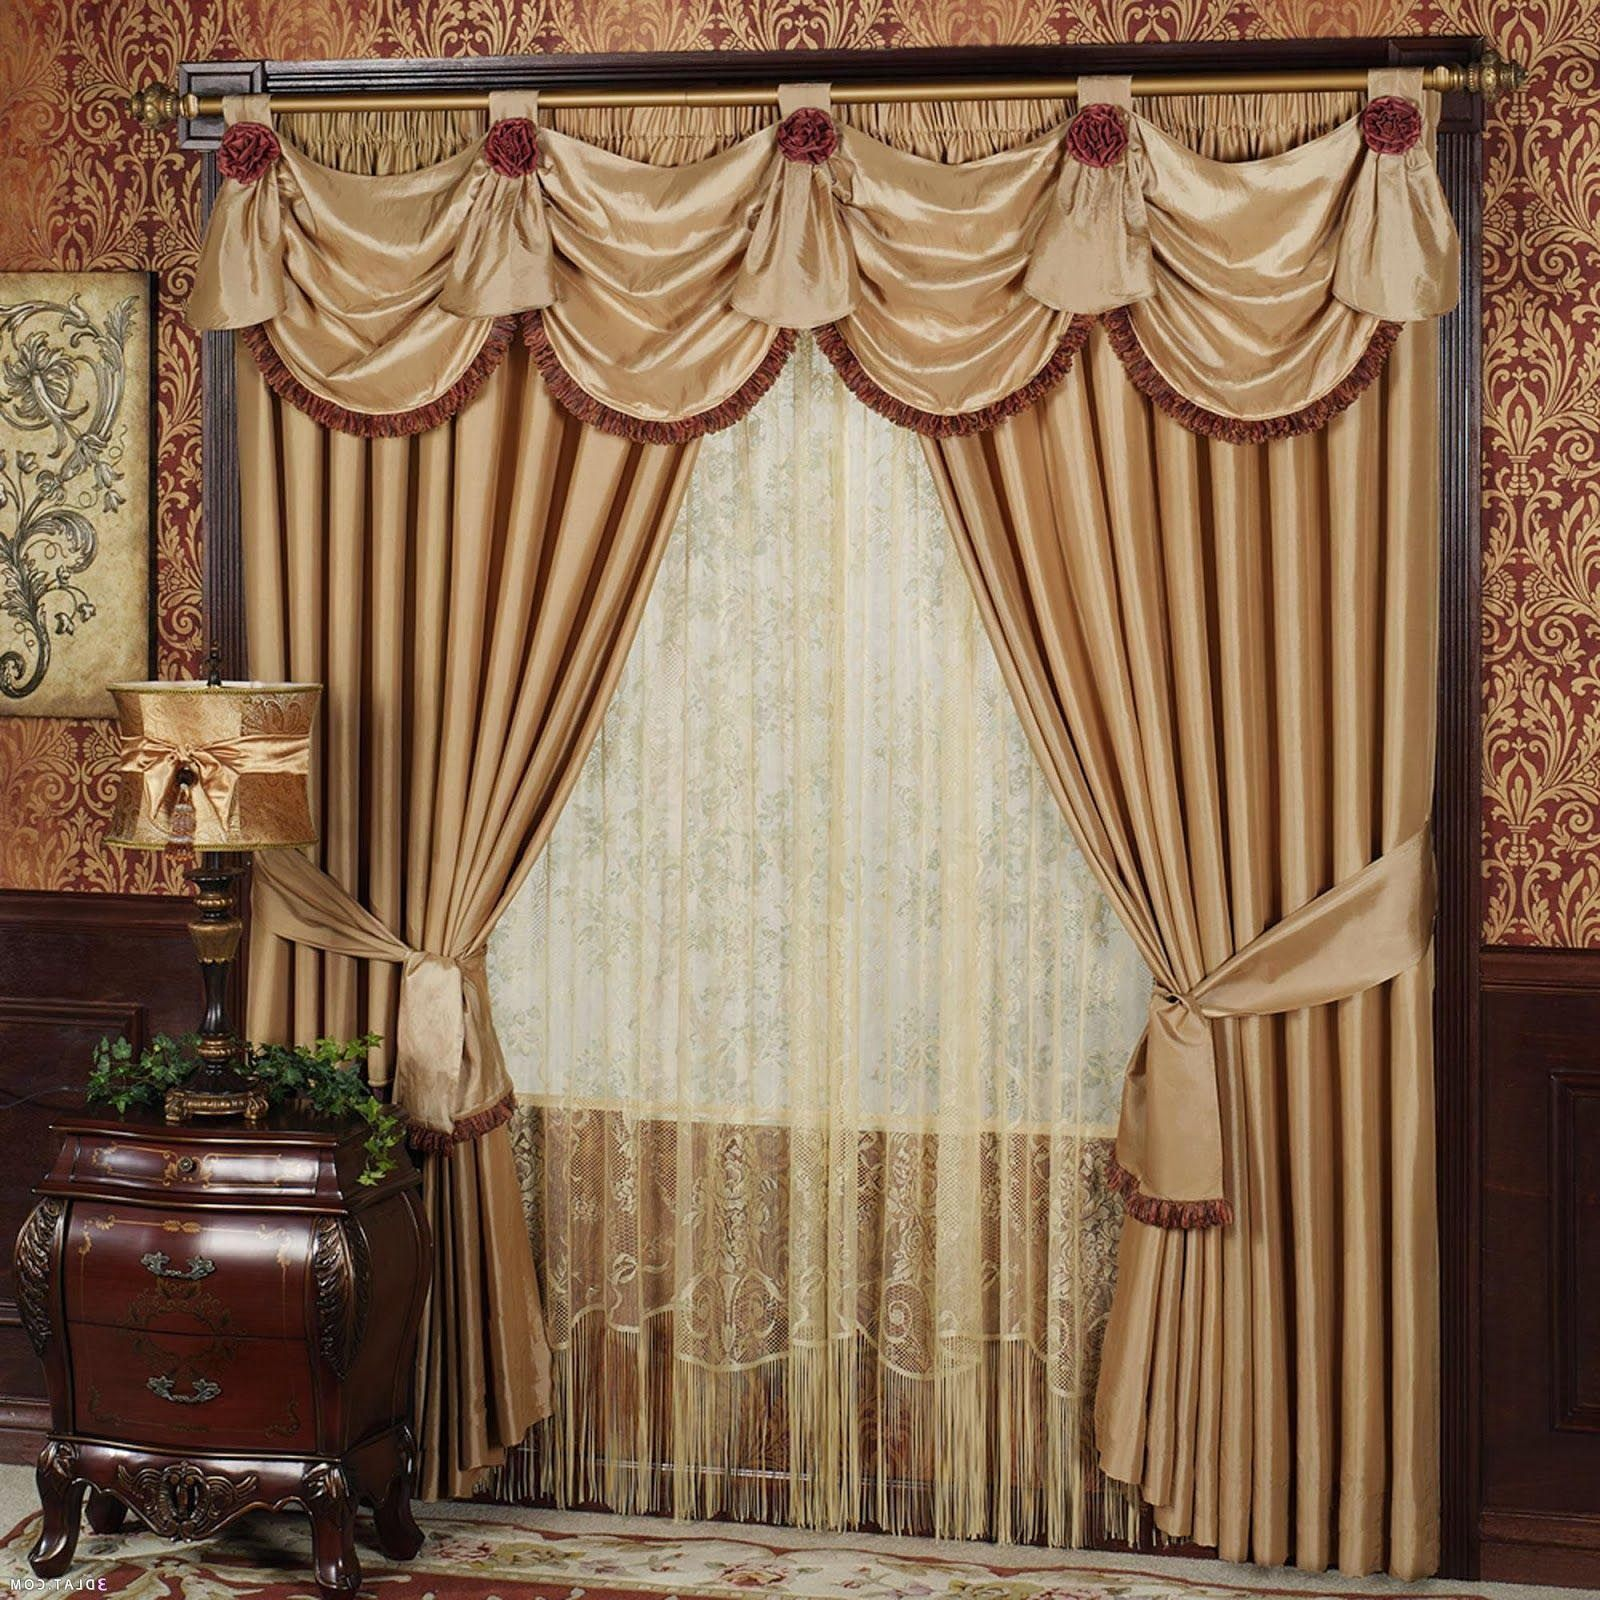 Living Room Drapes With Valances Valances For Living Room Curtains Living Room Luxury Curtains #nice #living #room #curtains